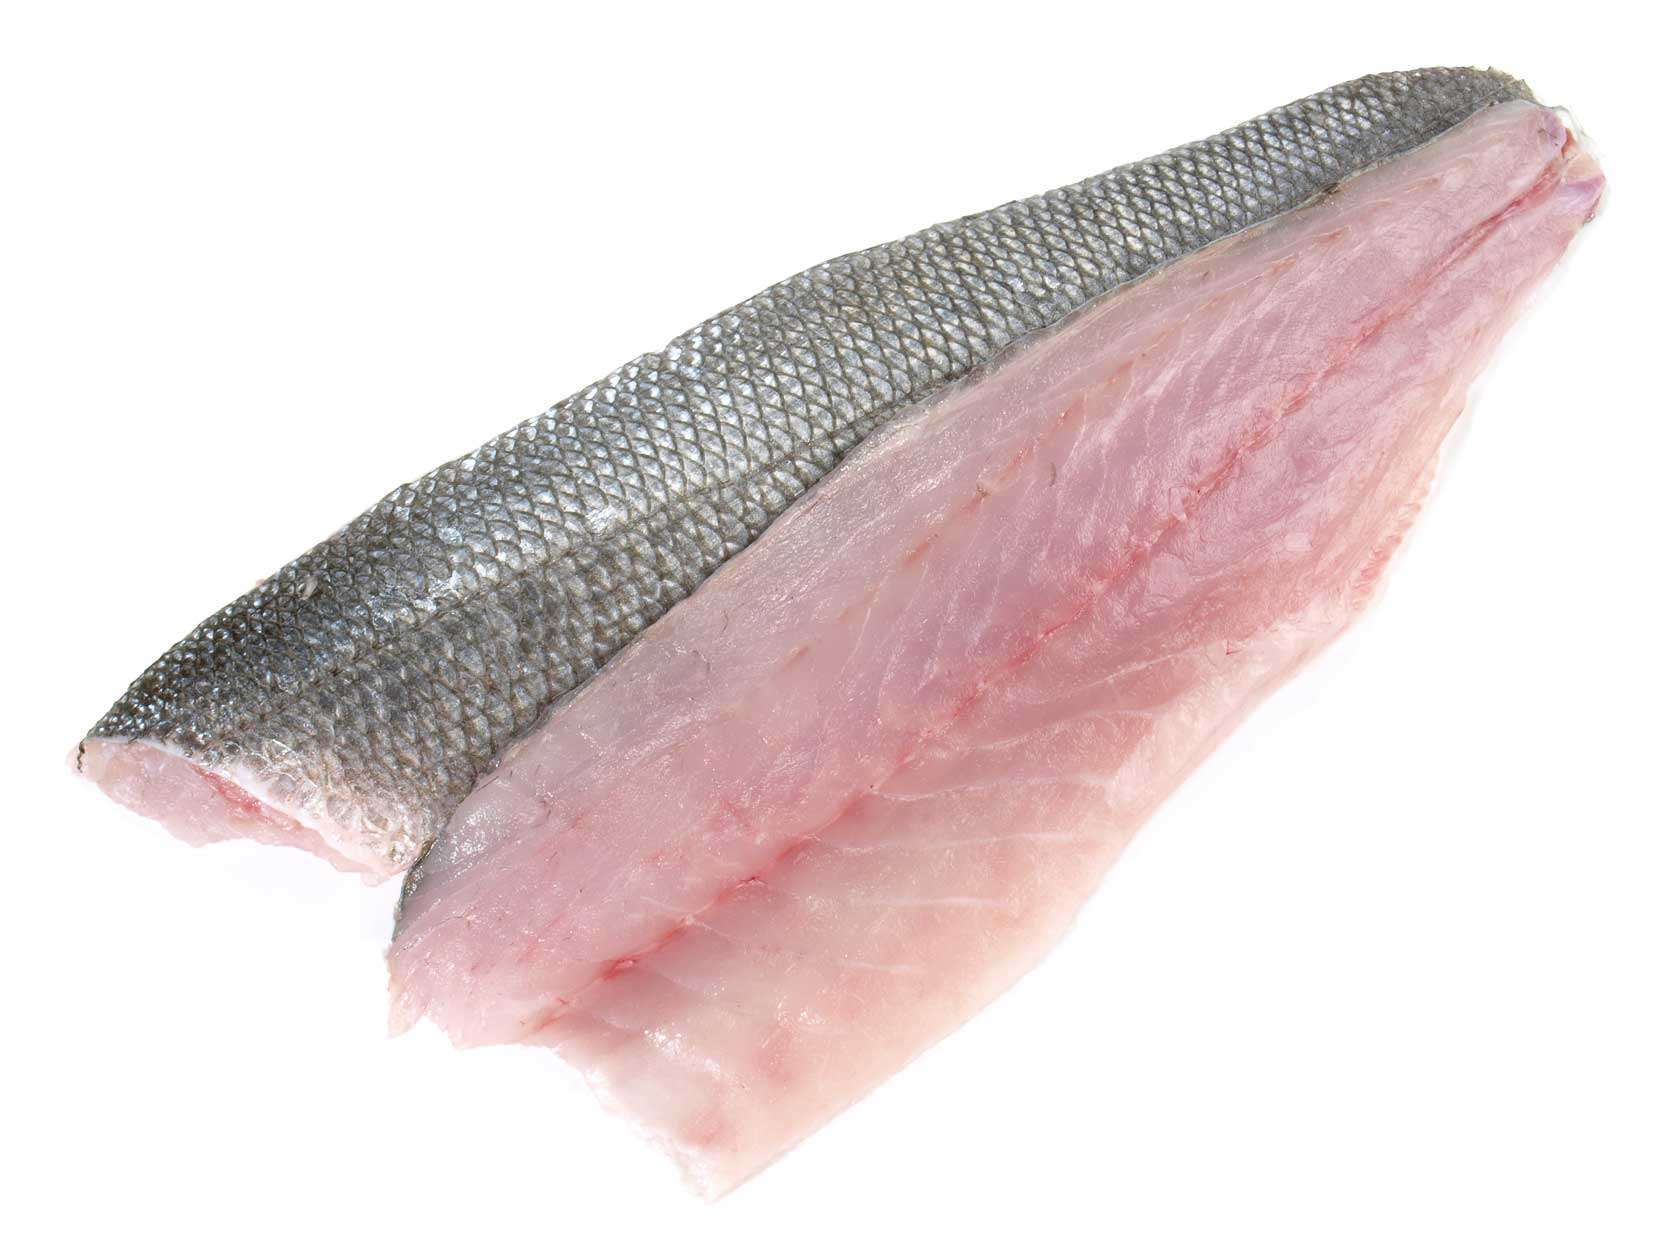 Image of Sea Bass Fillets